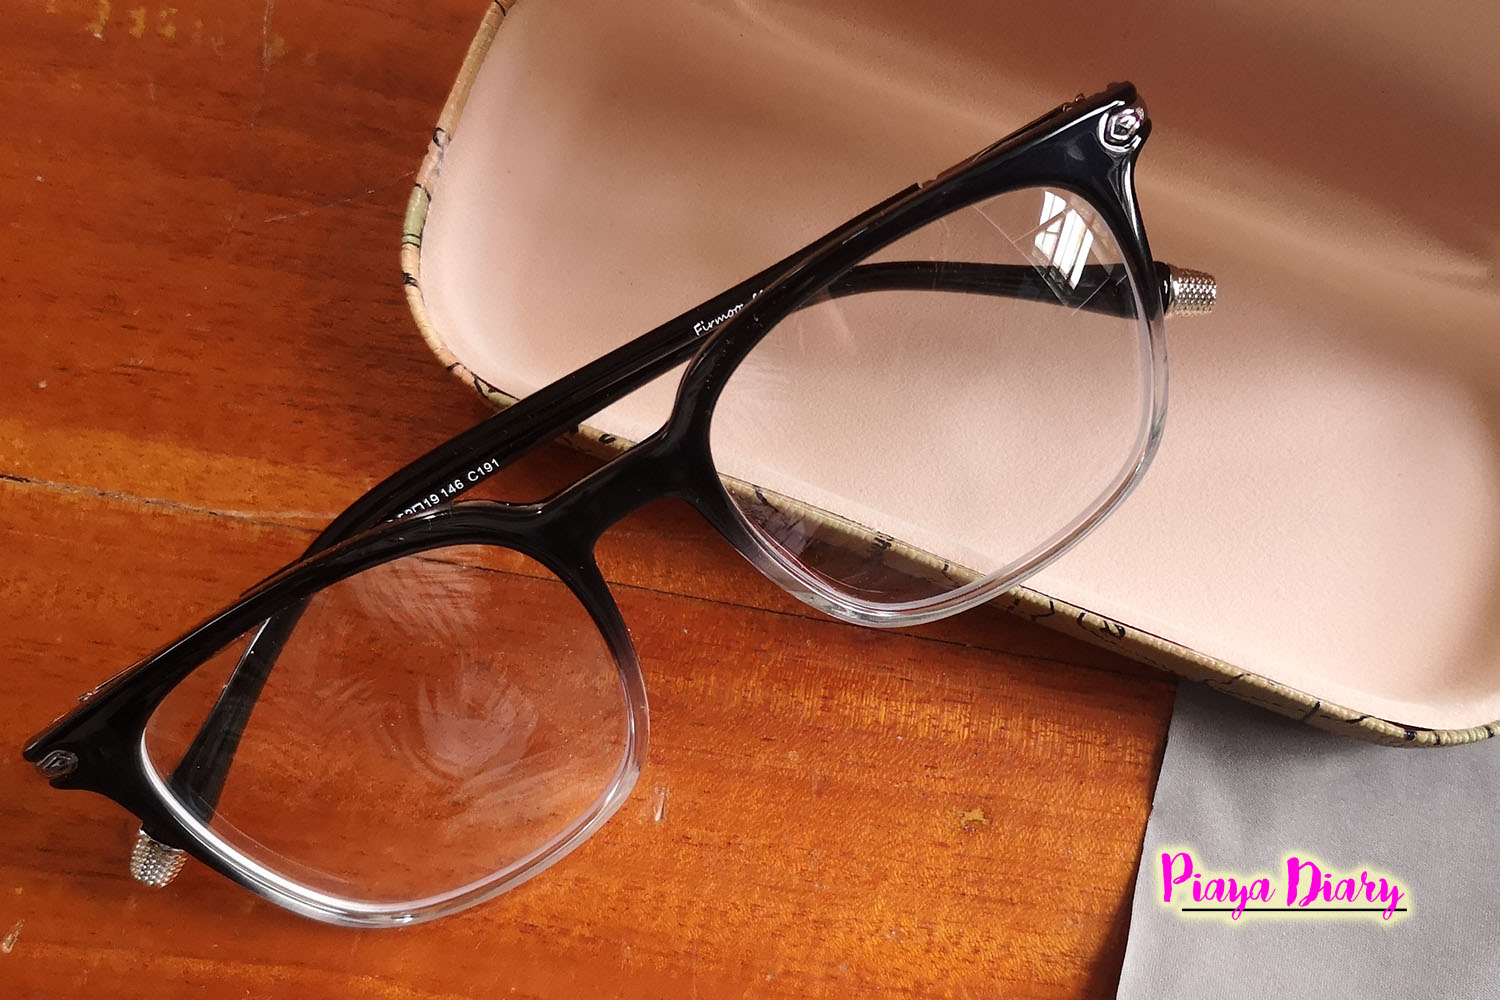 244ec2ce4cd Piaya Diary  Firmoo Glasses Review  Why I keep buying from this ...